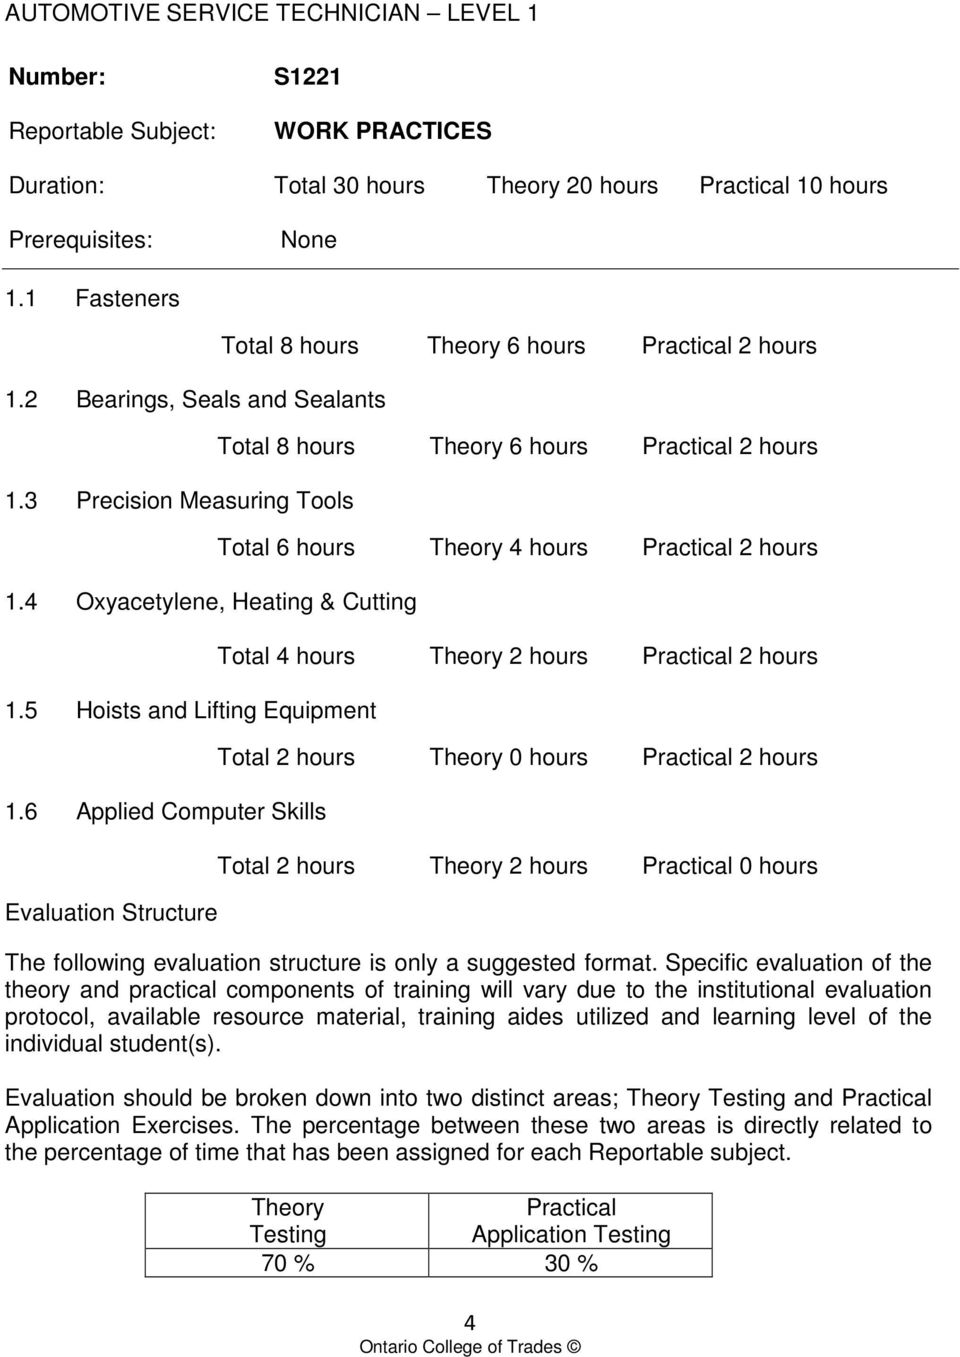 6 Applied Computer Skills Evaluation Structure Total 8 hours Theory 6 hours Practical 2 hours Total 8 hours Theory 6 hours Practical 2 hours Total 6 hours Theory 4 hours Practical 2 hours Total 4